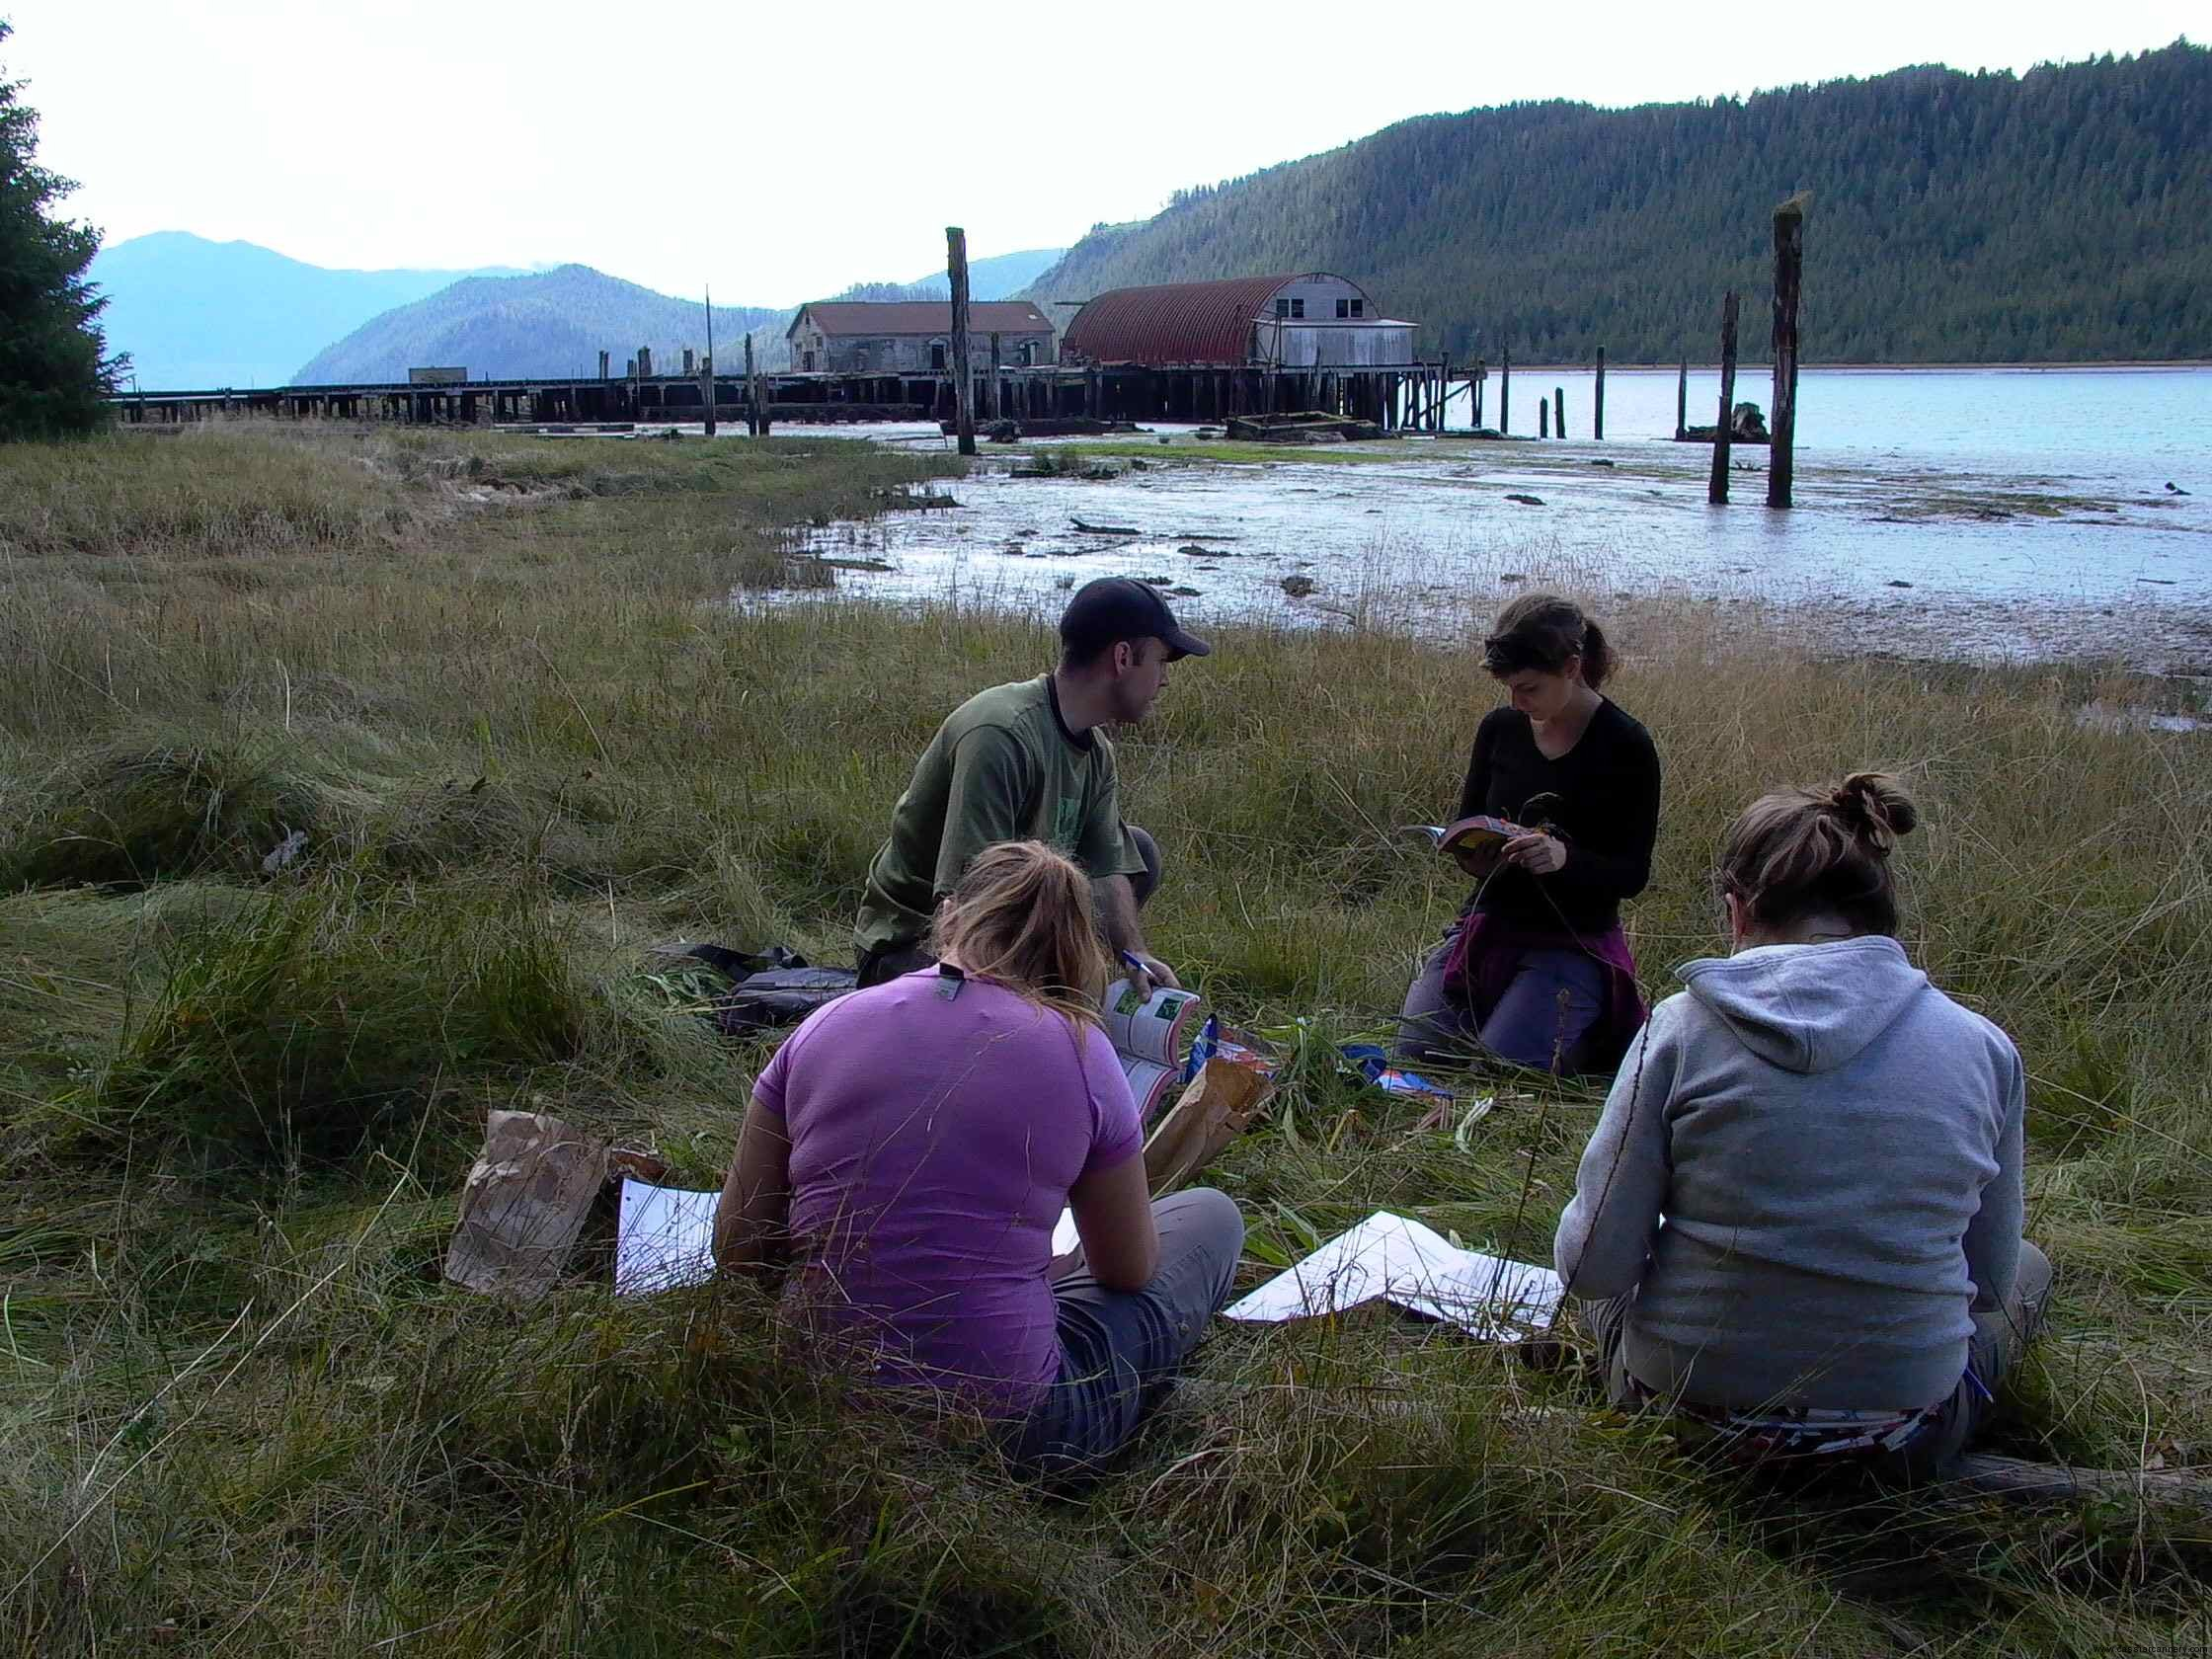 Cassiar Cannery - 2013 UNBC Field Research - checking samples against their master list